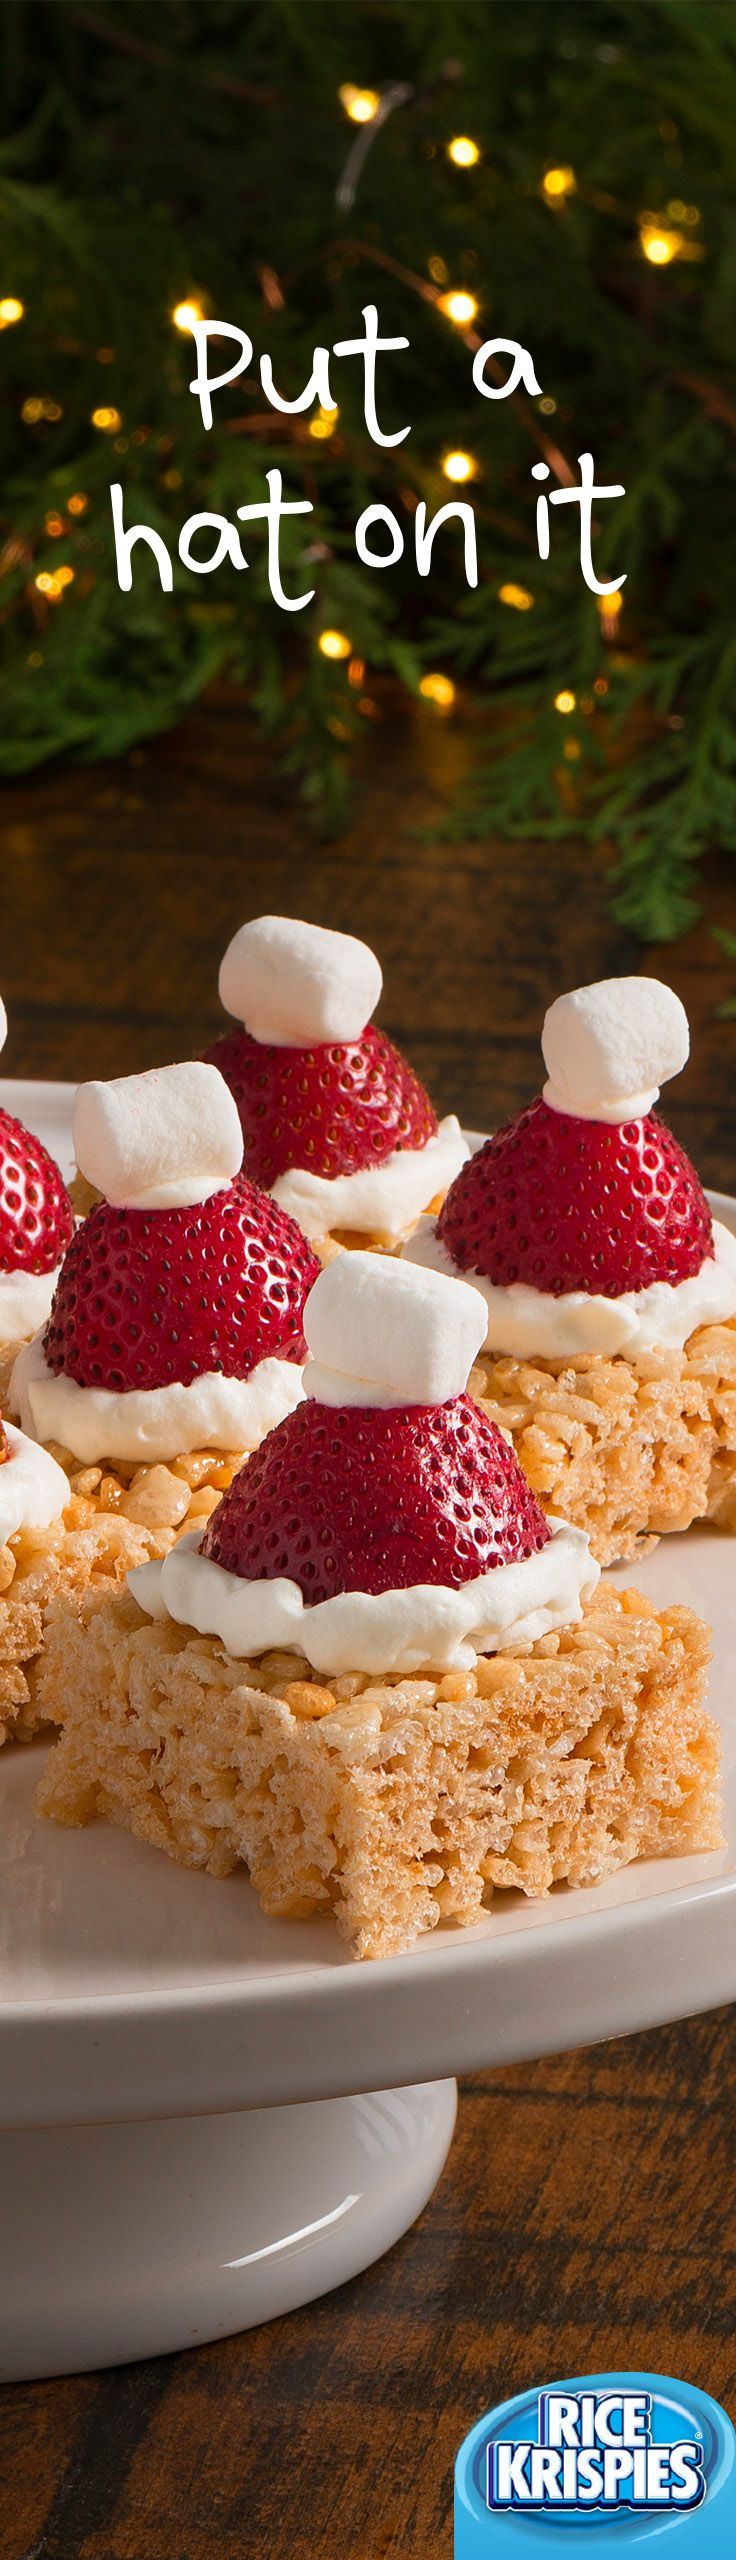 This would be adorable on mini cheesecakes for Christmas.